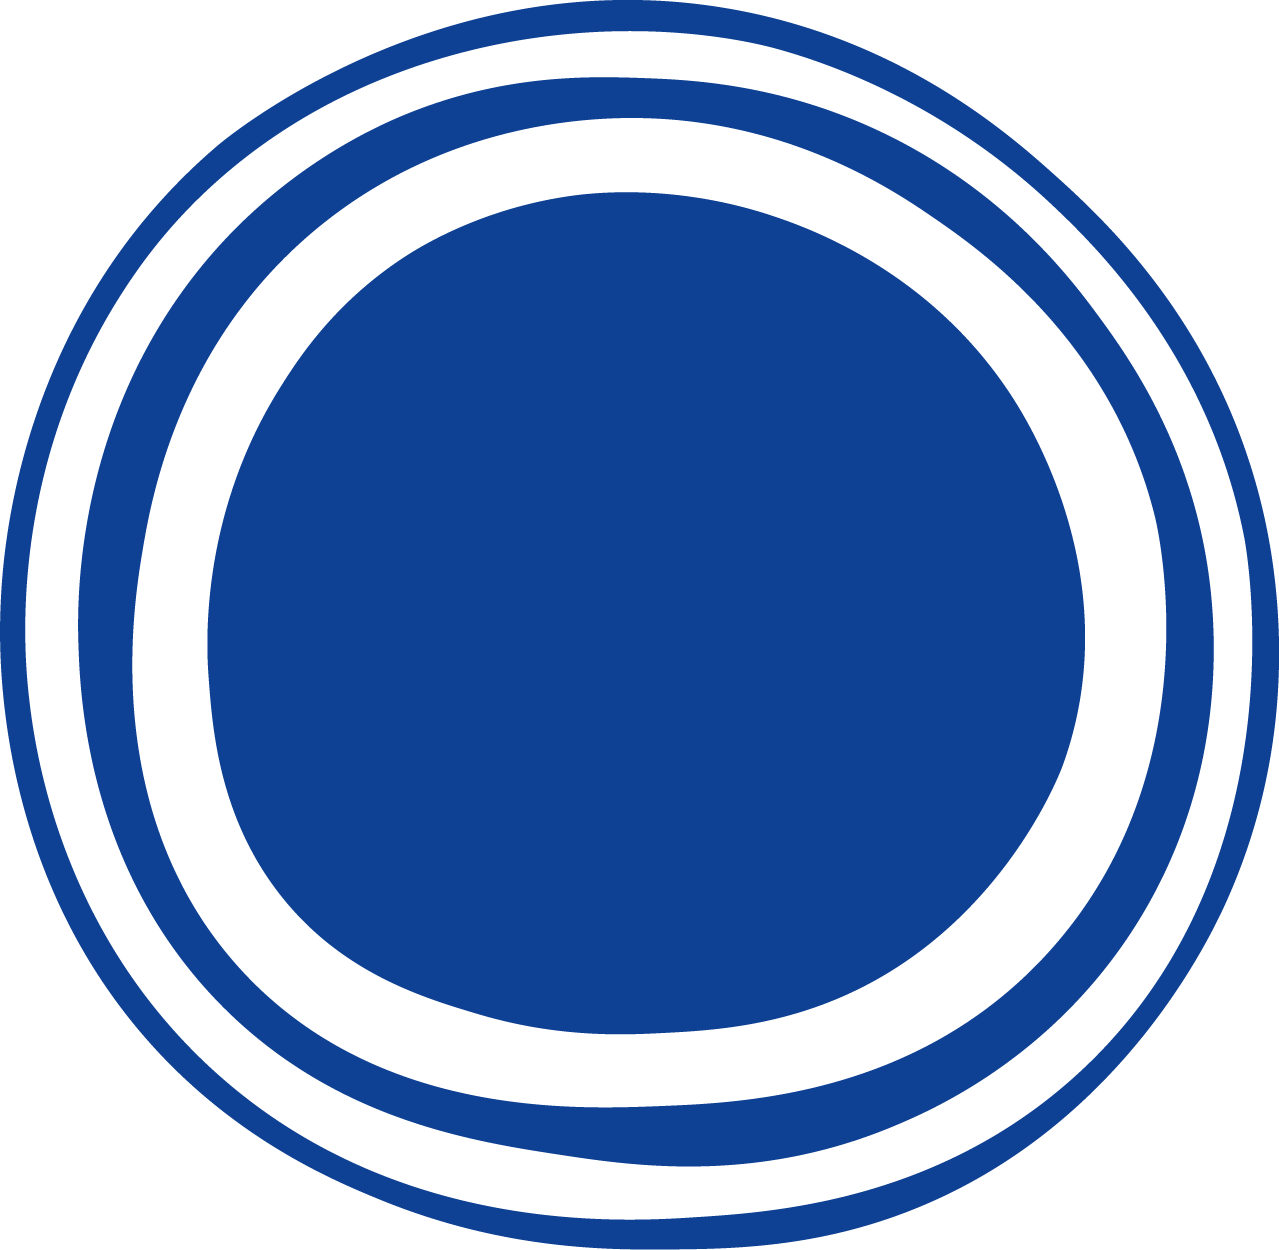 southernwater.co.uk favicon